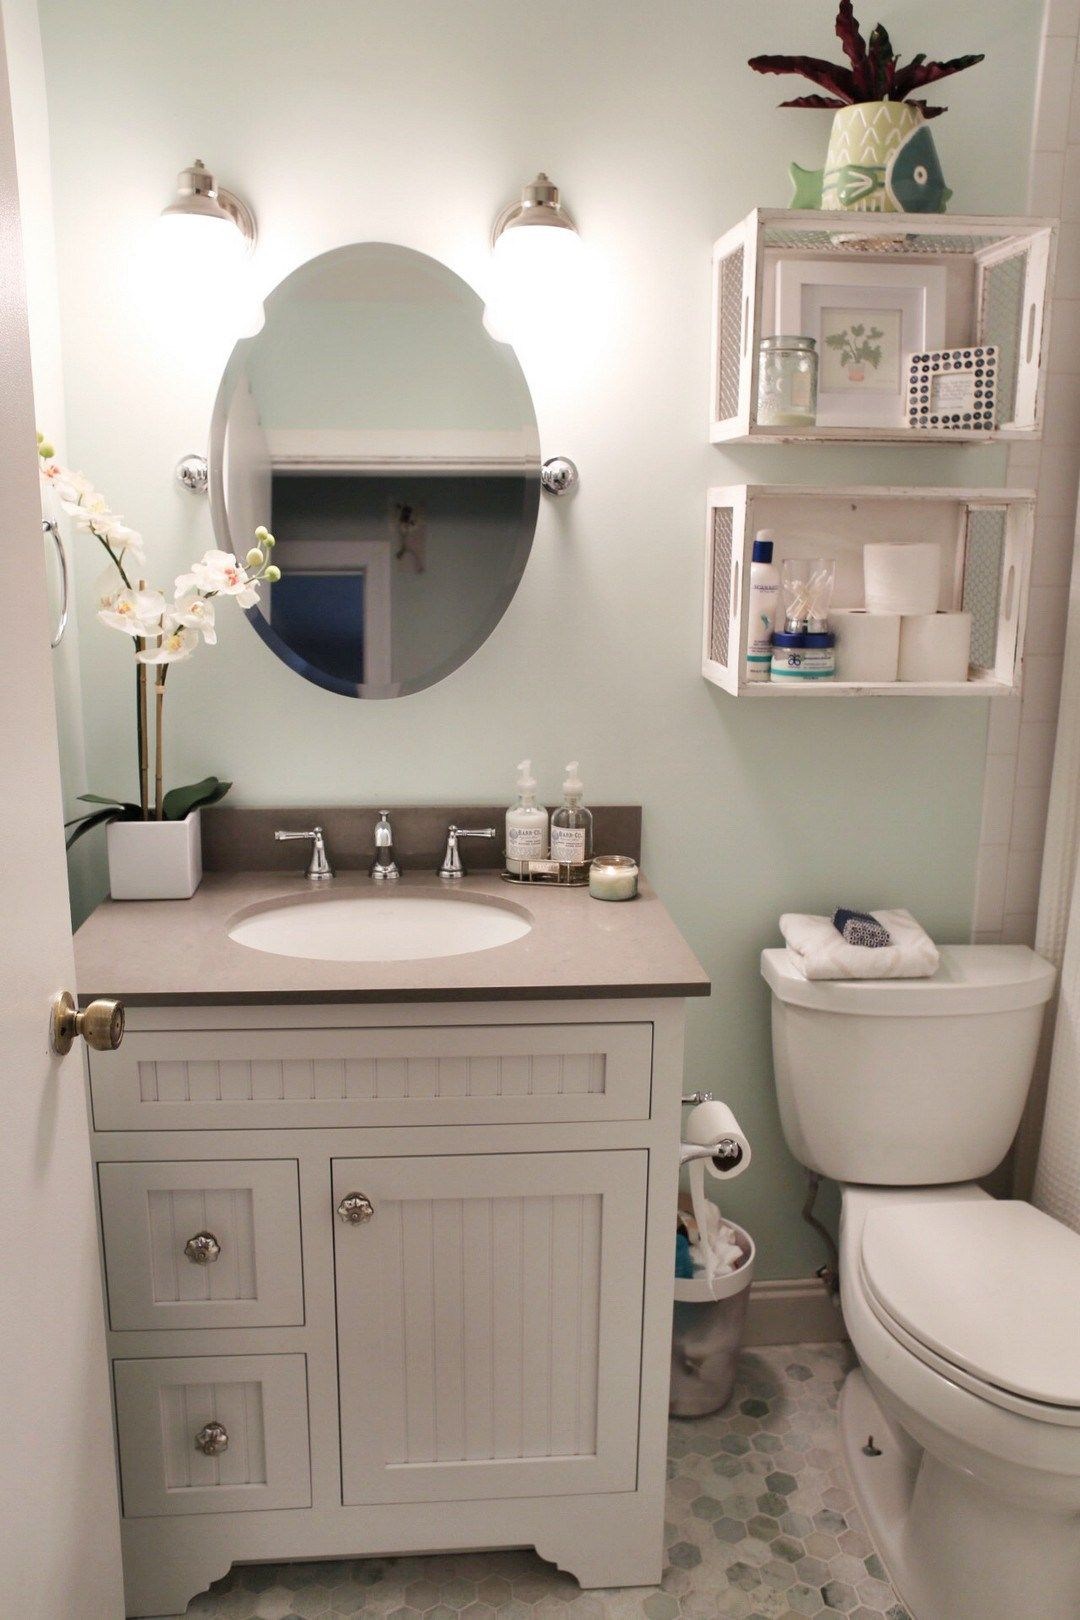 Small Bathroom Makeover On A Budget 99 small master bathroom makeover ideas on a budget (32